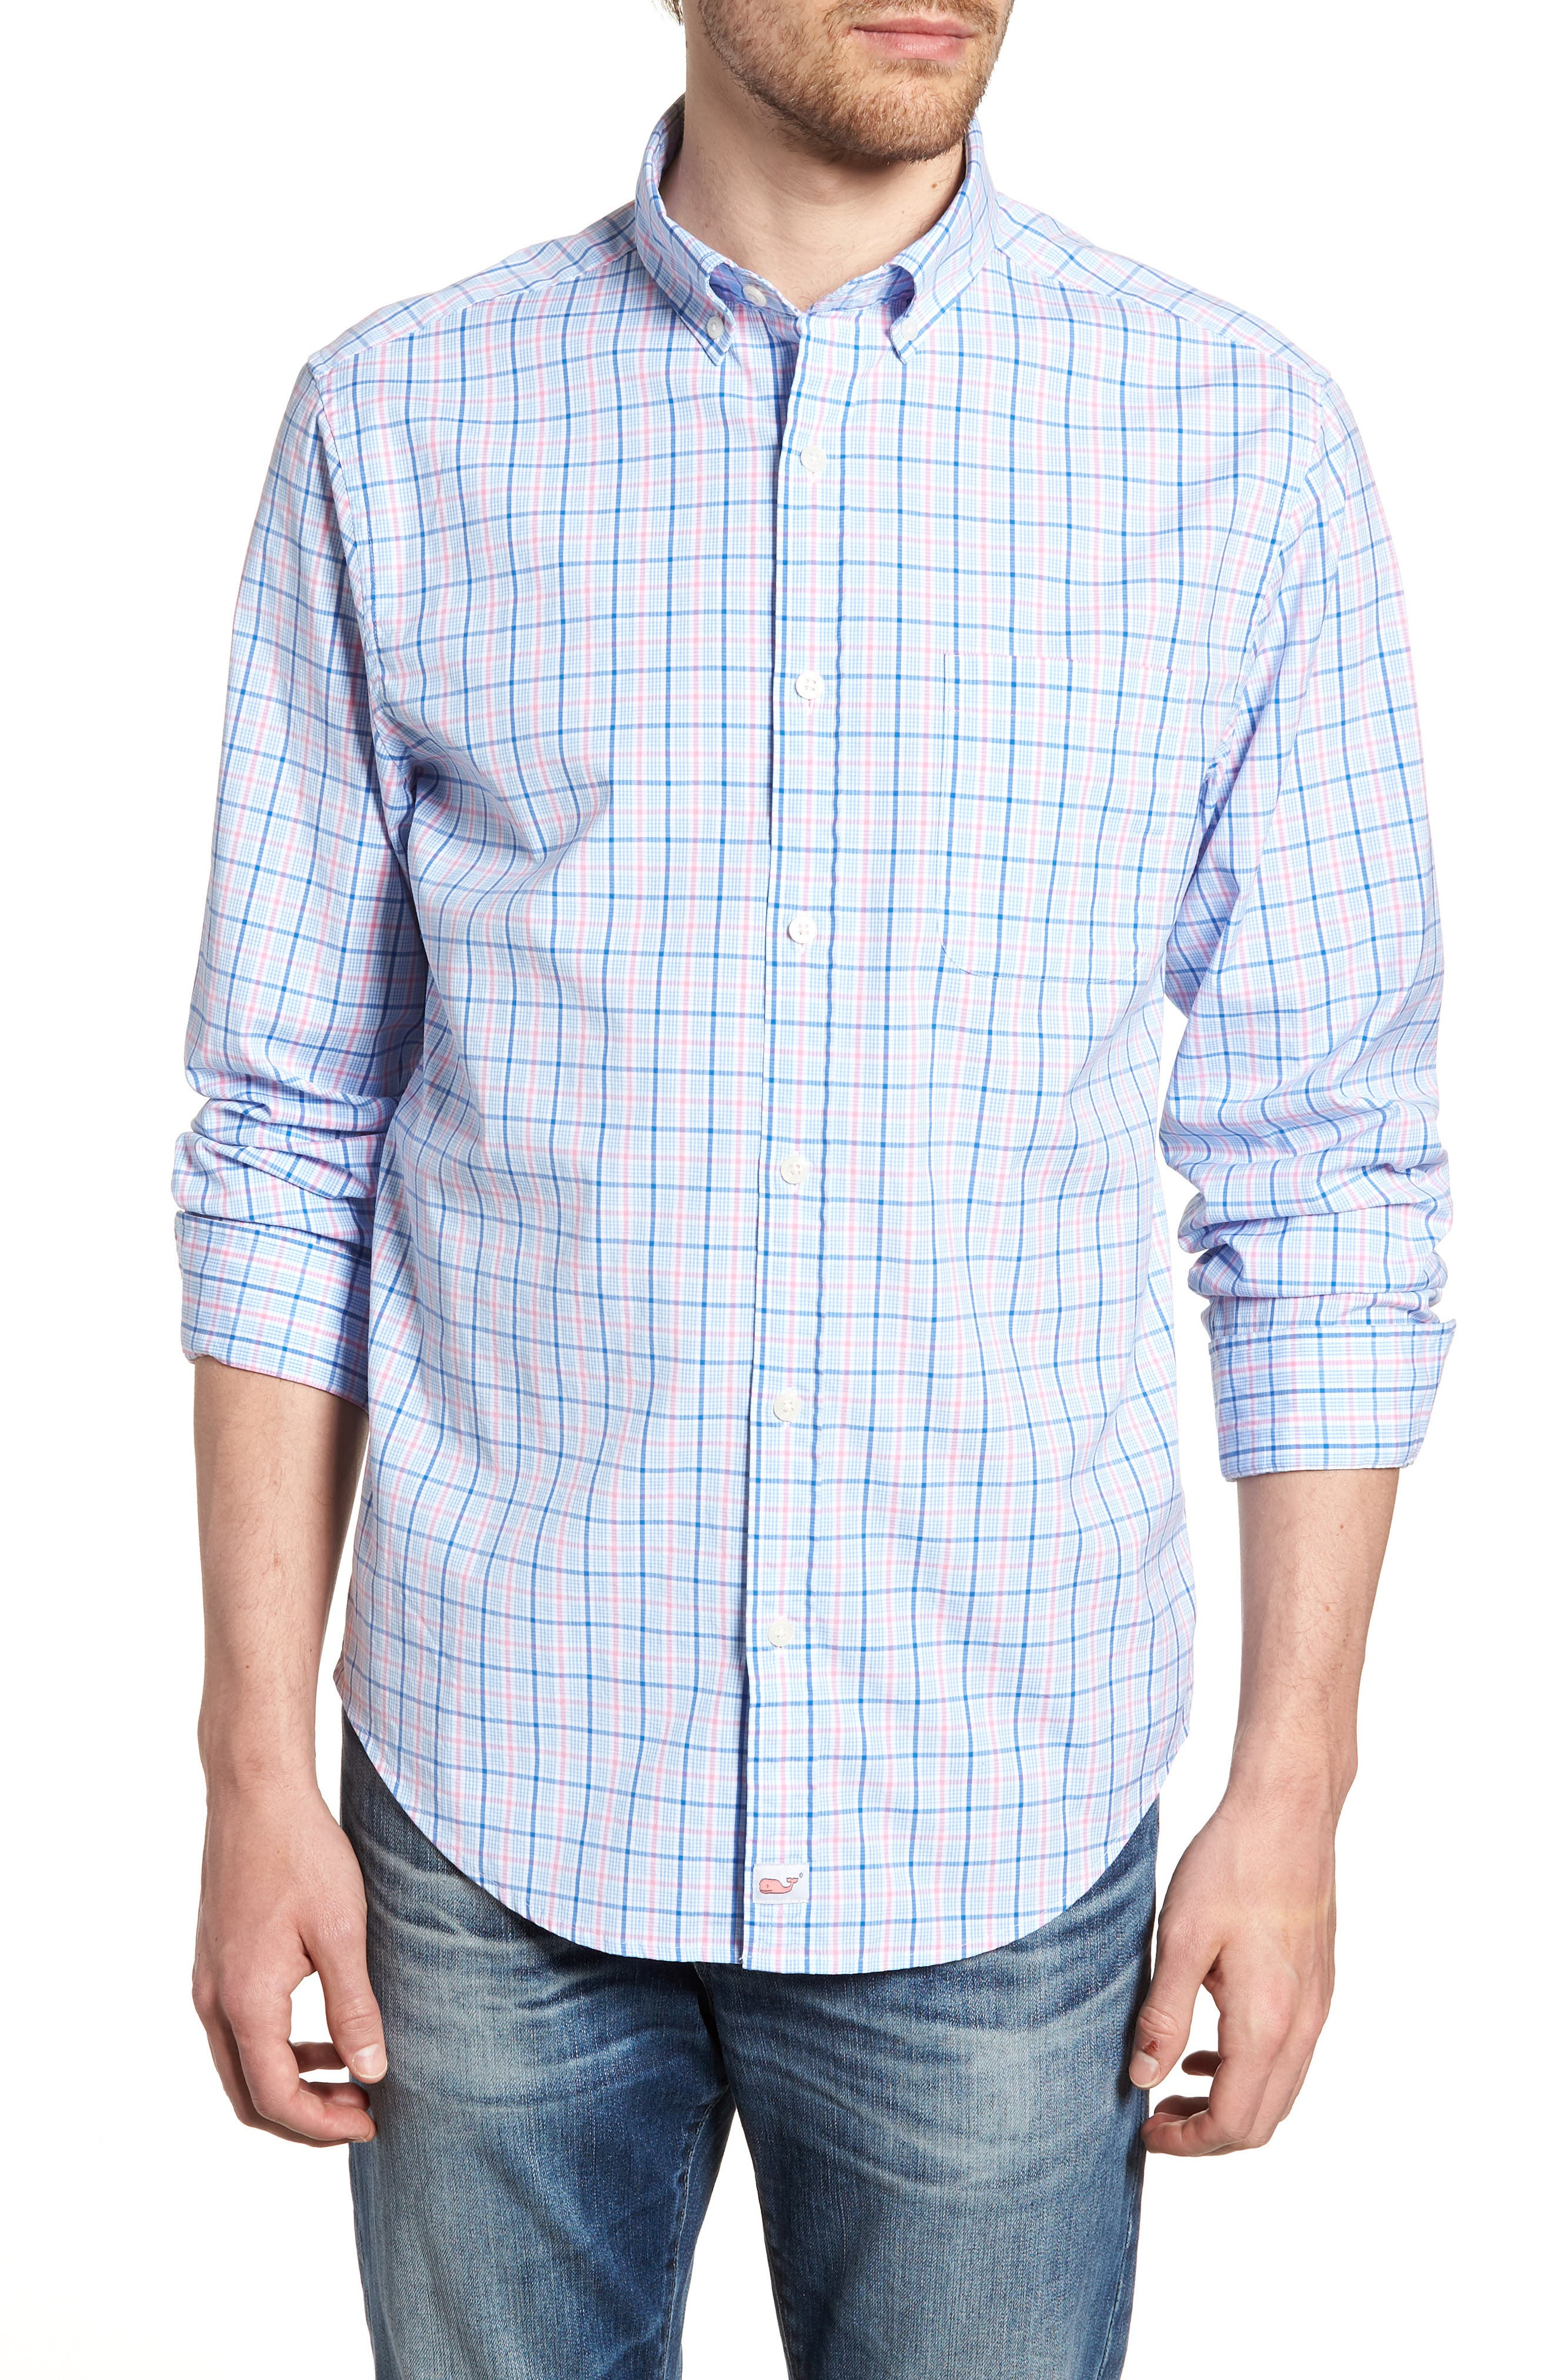 Sir Christie Classic Fit Check Sport Shirt,                         Main,                         color, Spinnaker